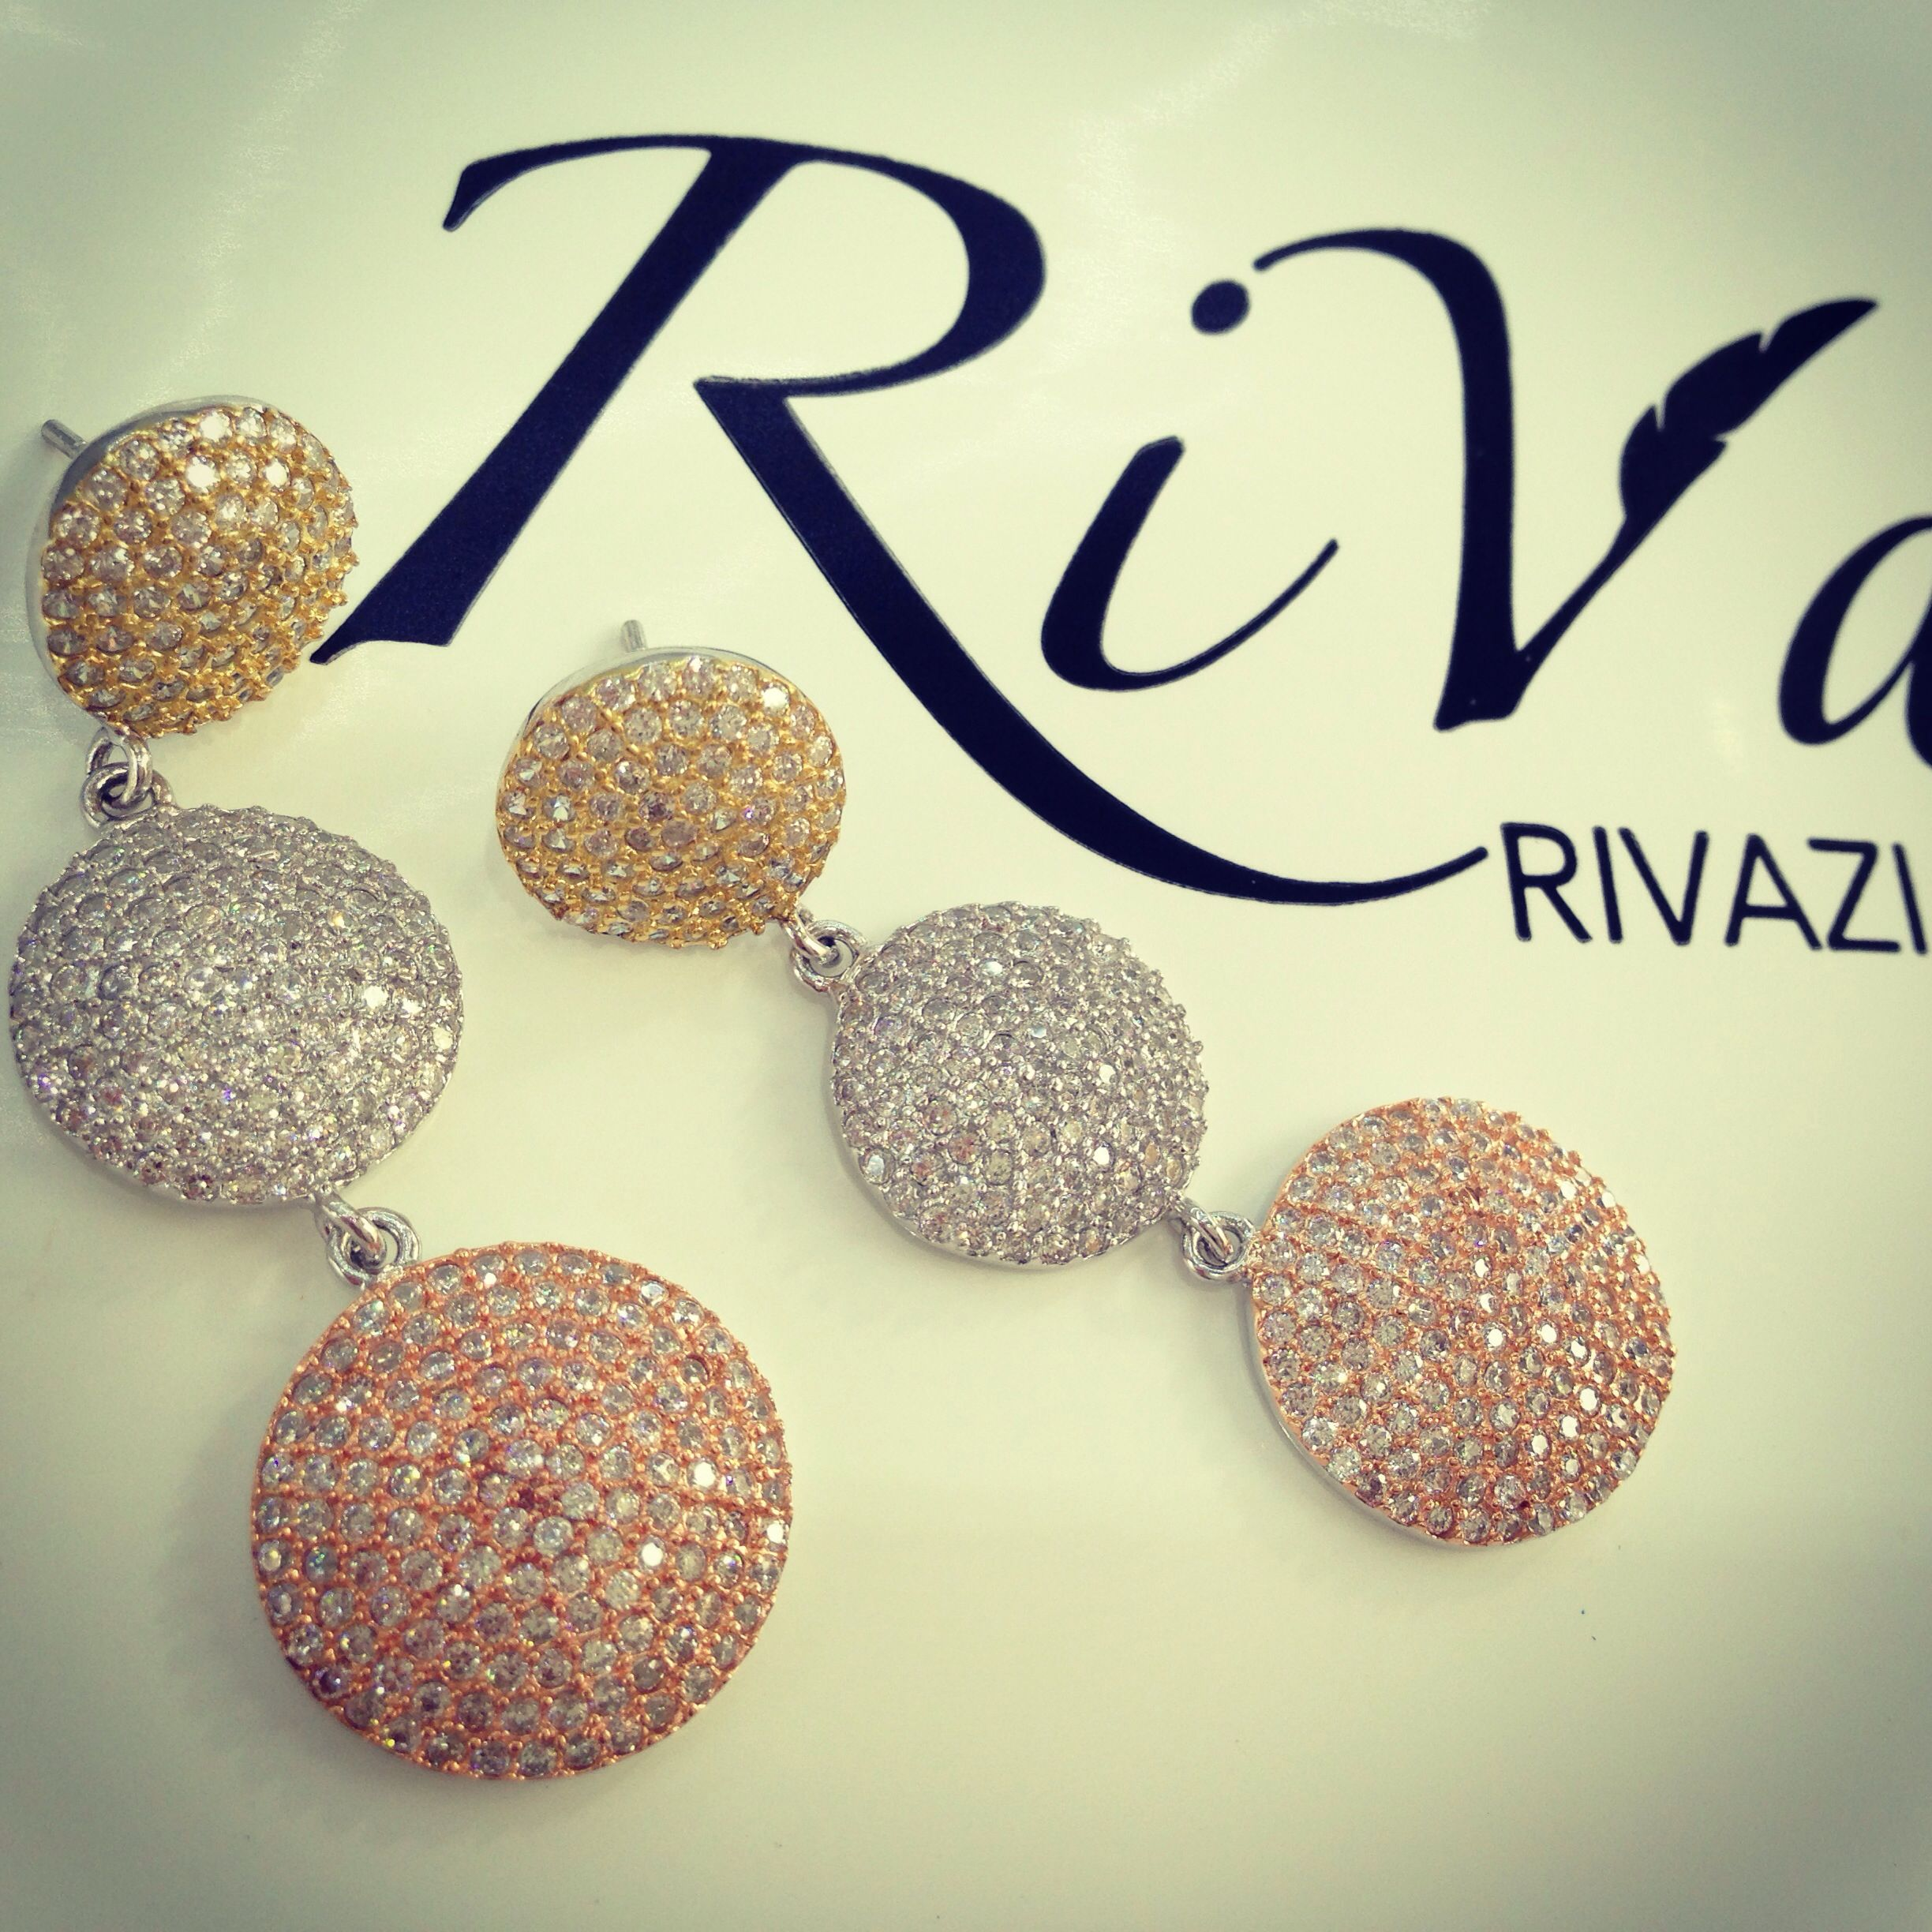 RiVazi Three Tone Miraje earrings are made to match any style and preference. Constructed from sterling silver, dipped in gold and rose gold with a detailed cubic zirconia embellishment.